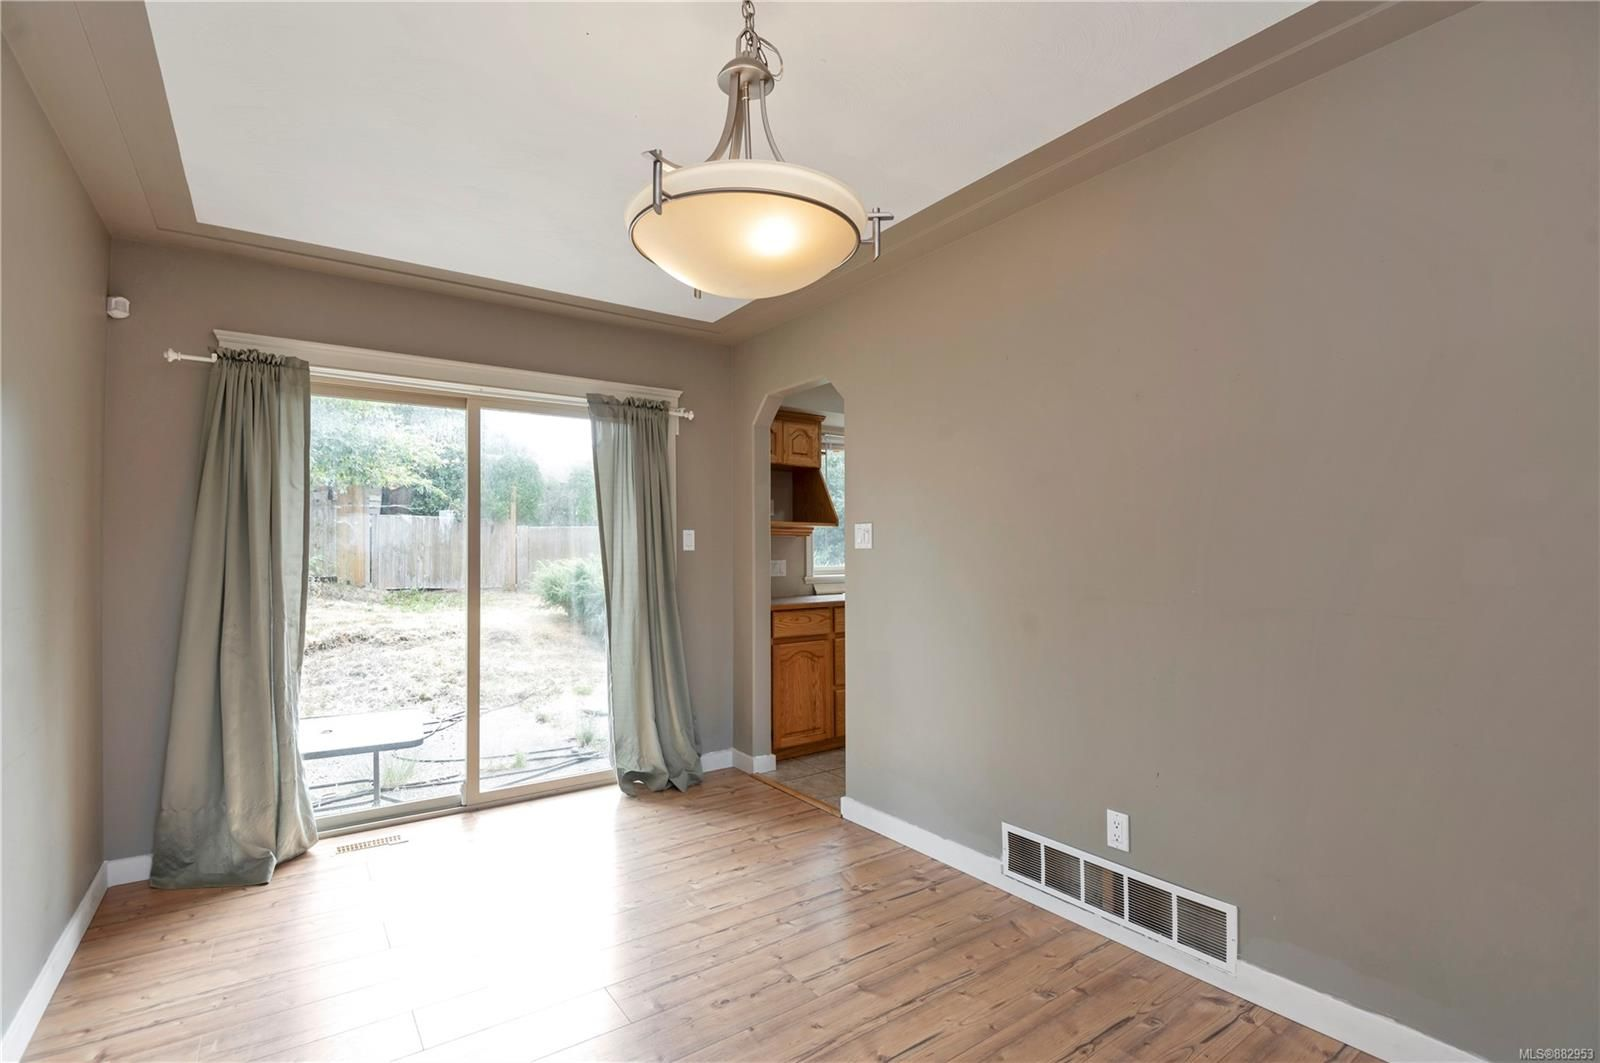 Photo 10: Photos: 732 Oribi Dr in : CR Campbell River Central House for sale (Campbell River)  : MLS®# 882953